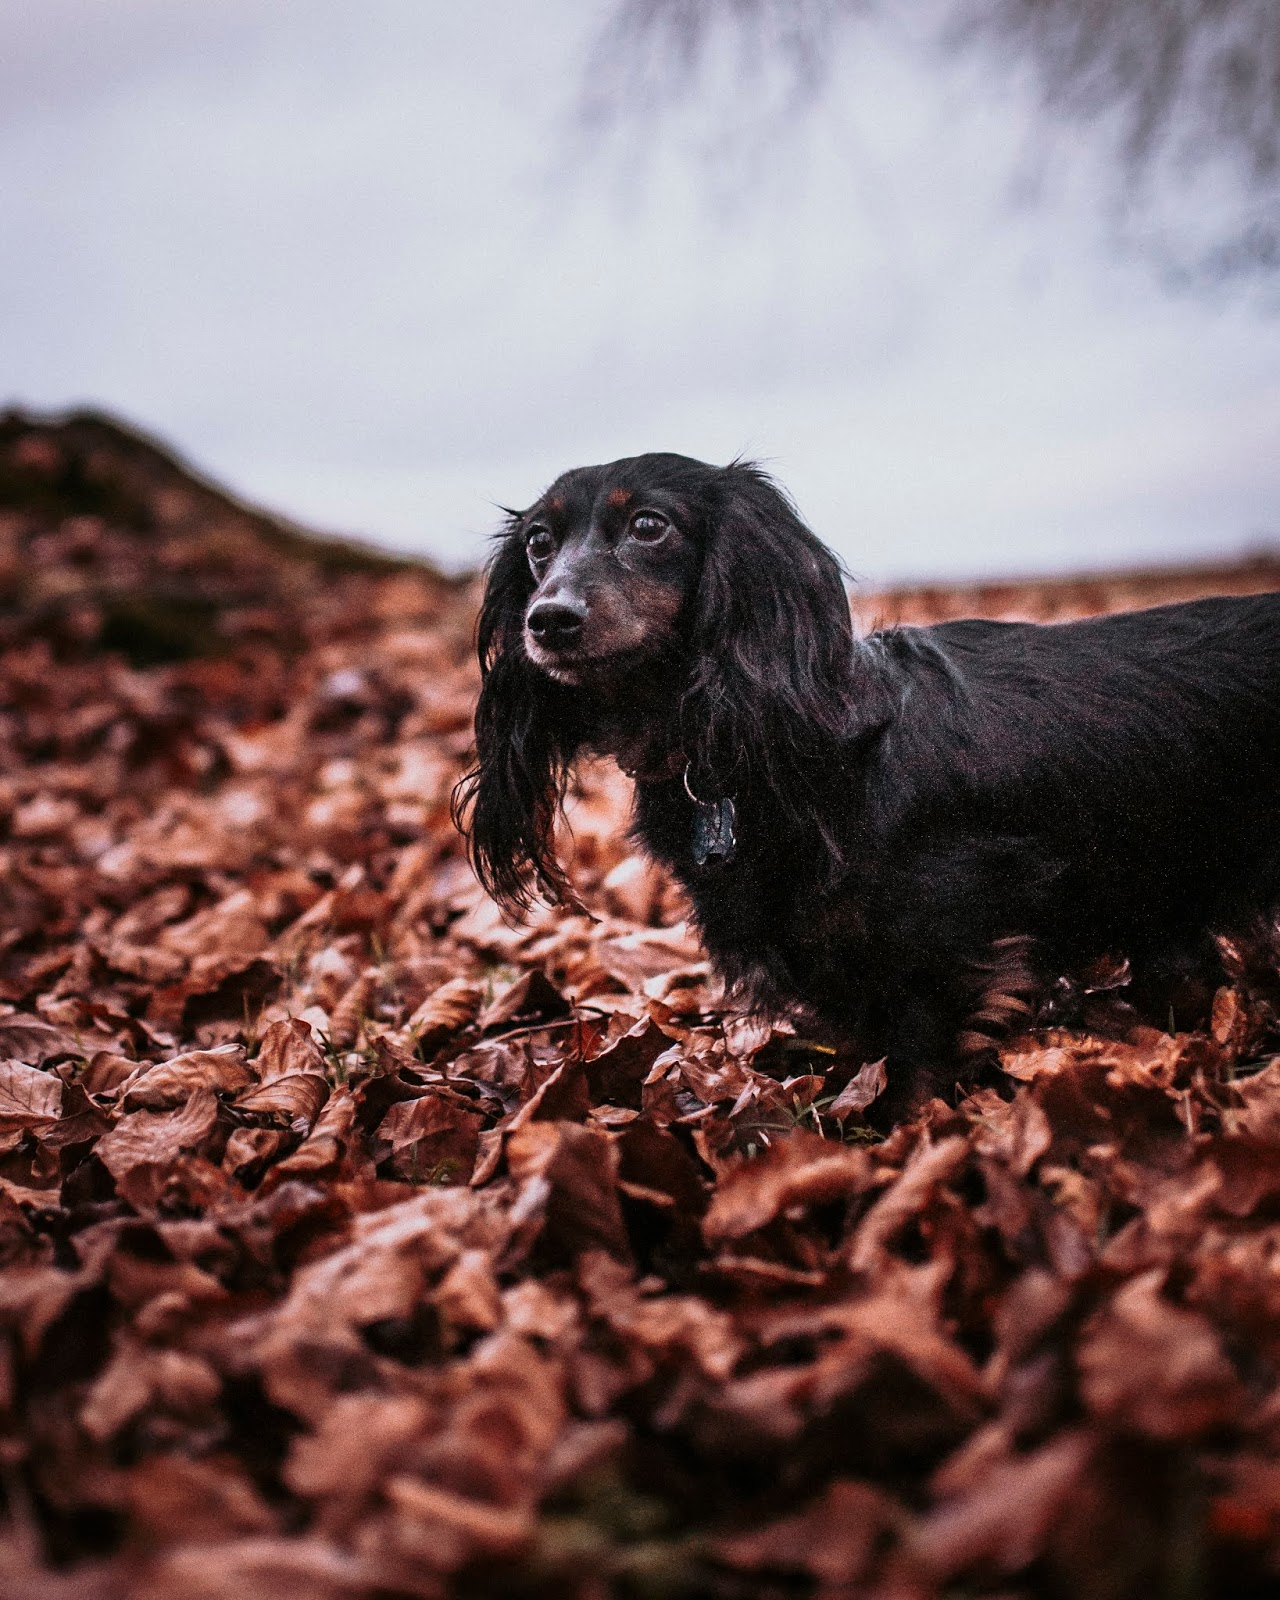 hetty mini dachshund leaves autumn liquid grain liquidgrain